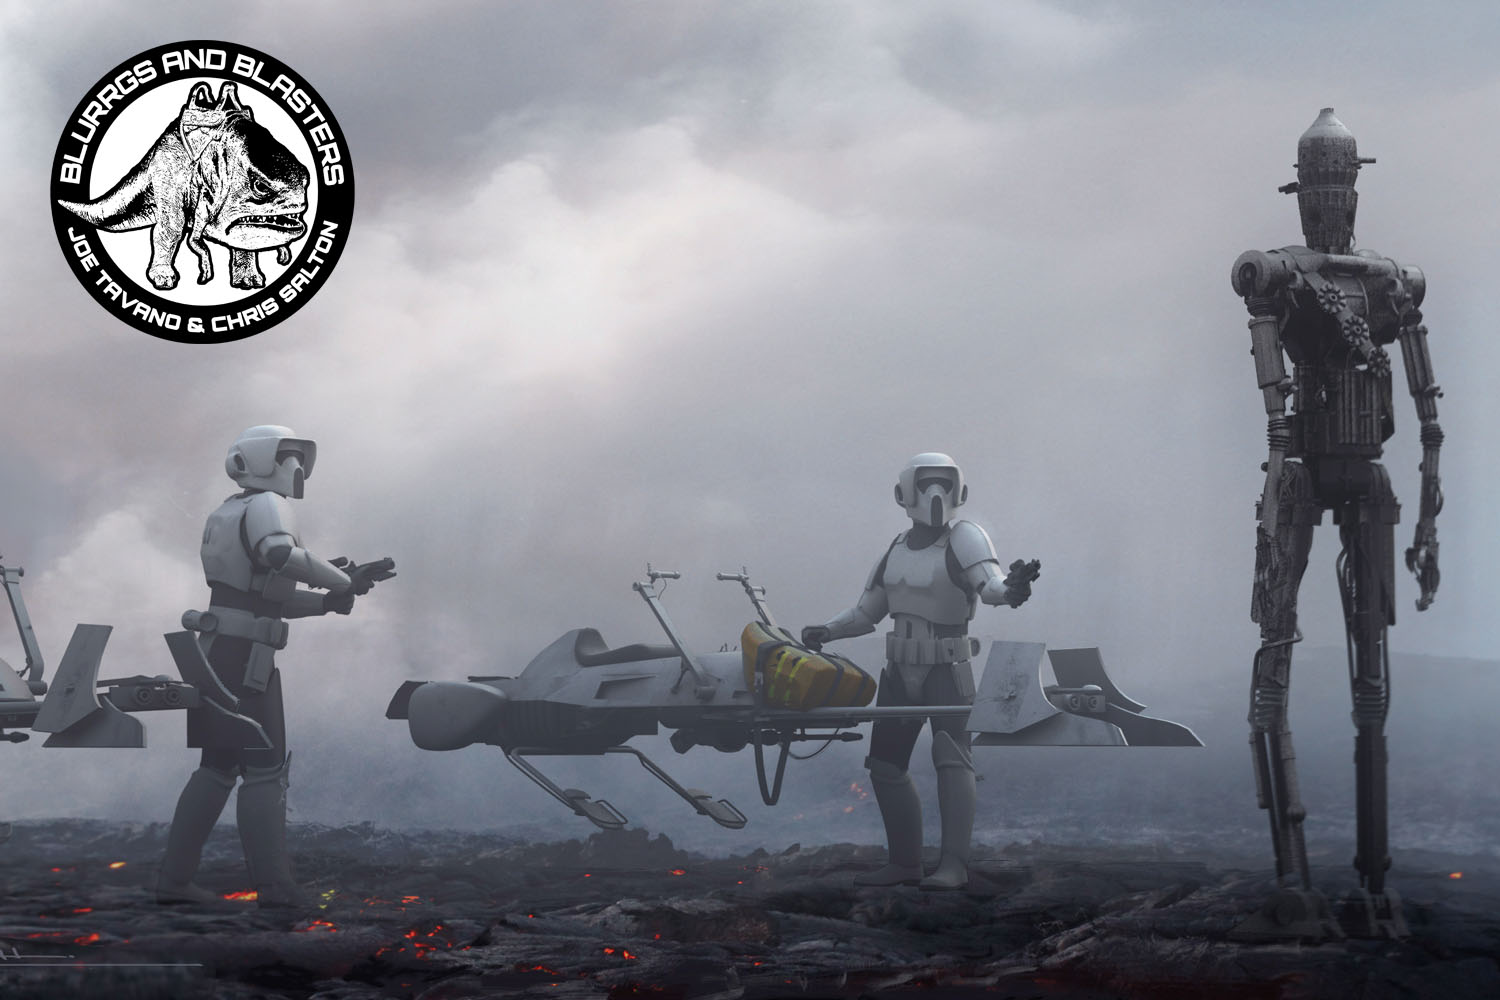 Blurrgs and Blasters: The Mandalorian, Chapter 8: Redemption (Brews and Blasters 243)